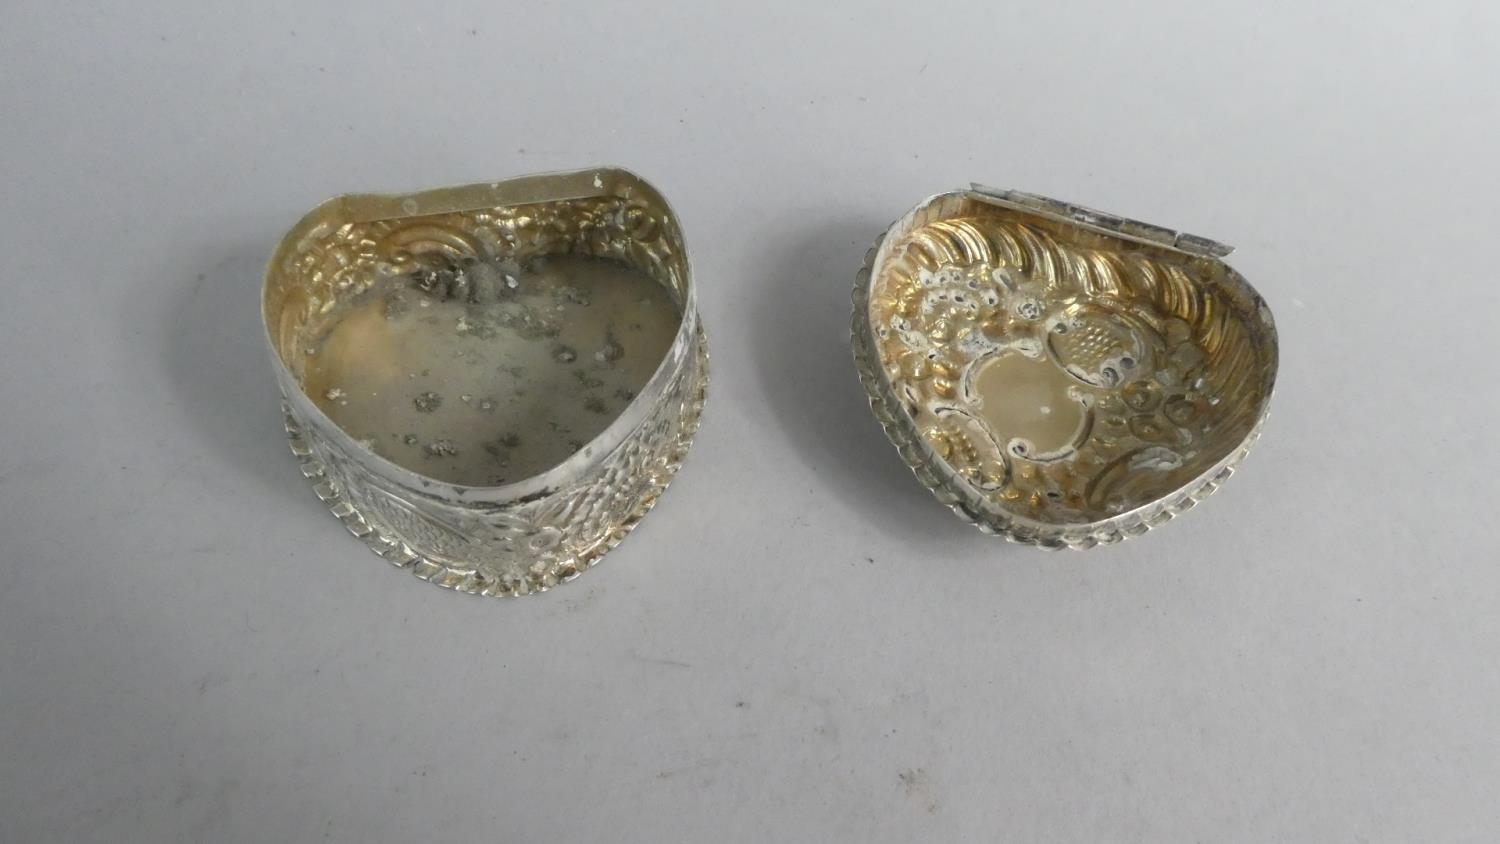 Lot 228 - Two Heart Shaped Silver Boxes and a Silver Heart Shaped Pin Dish